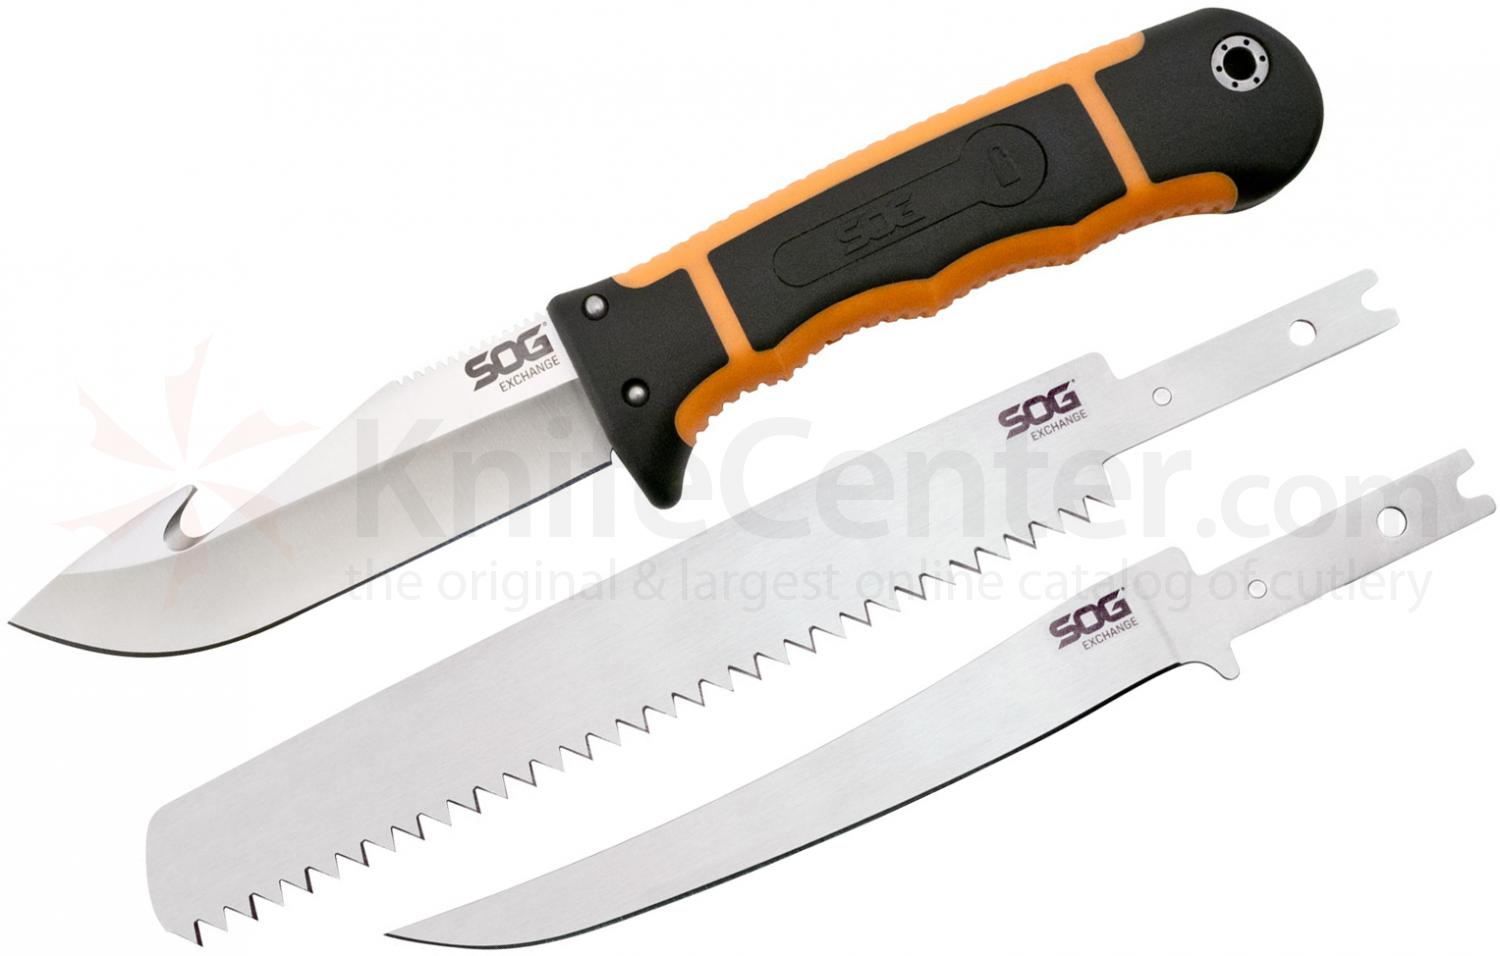 SOG HT201N HuntsPoint Exchange Fixed 4.3 inch Gut Hook, Fillet & Saw Blades, Zytel Handles, Nylon Sheath